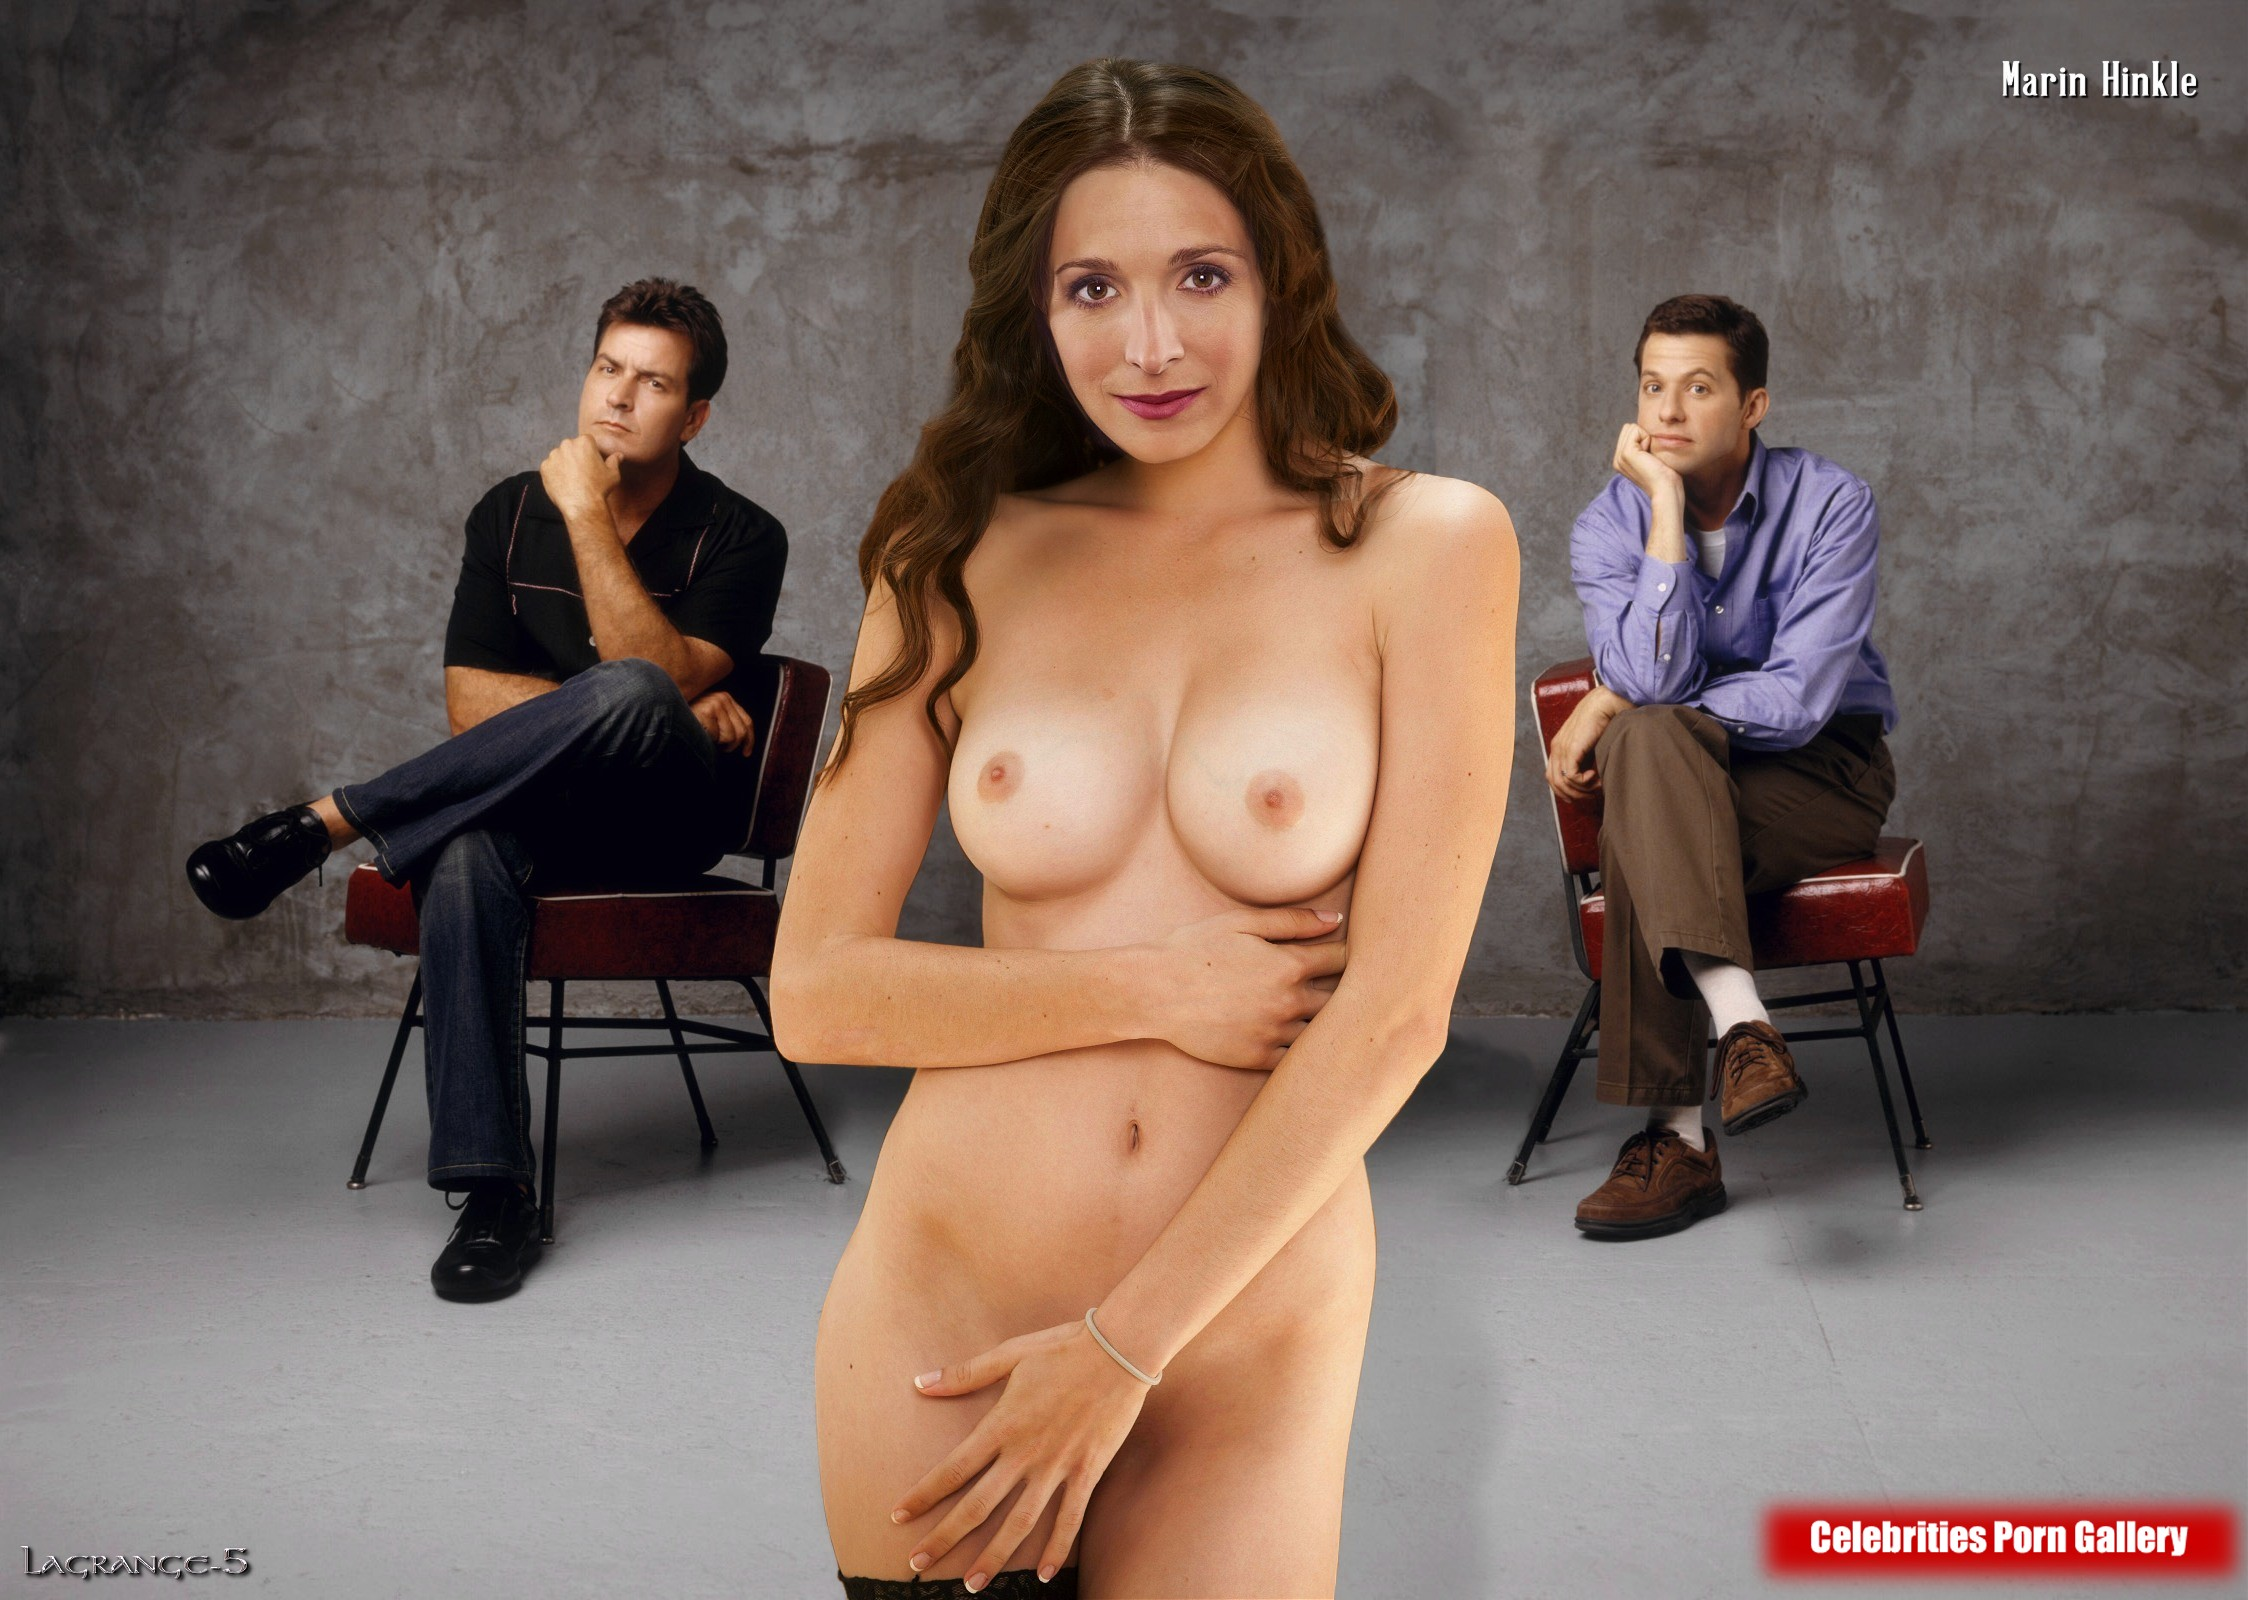 Marin hinkle naked pics or scenes